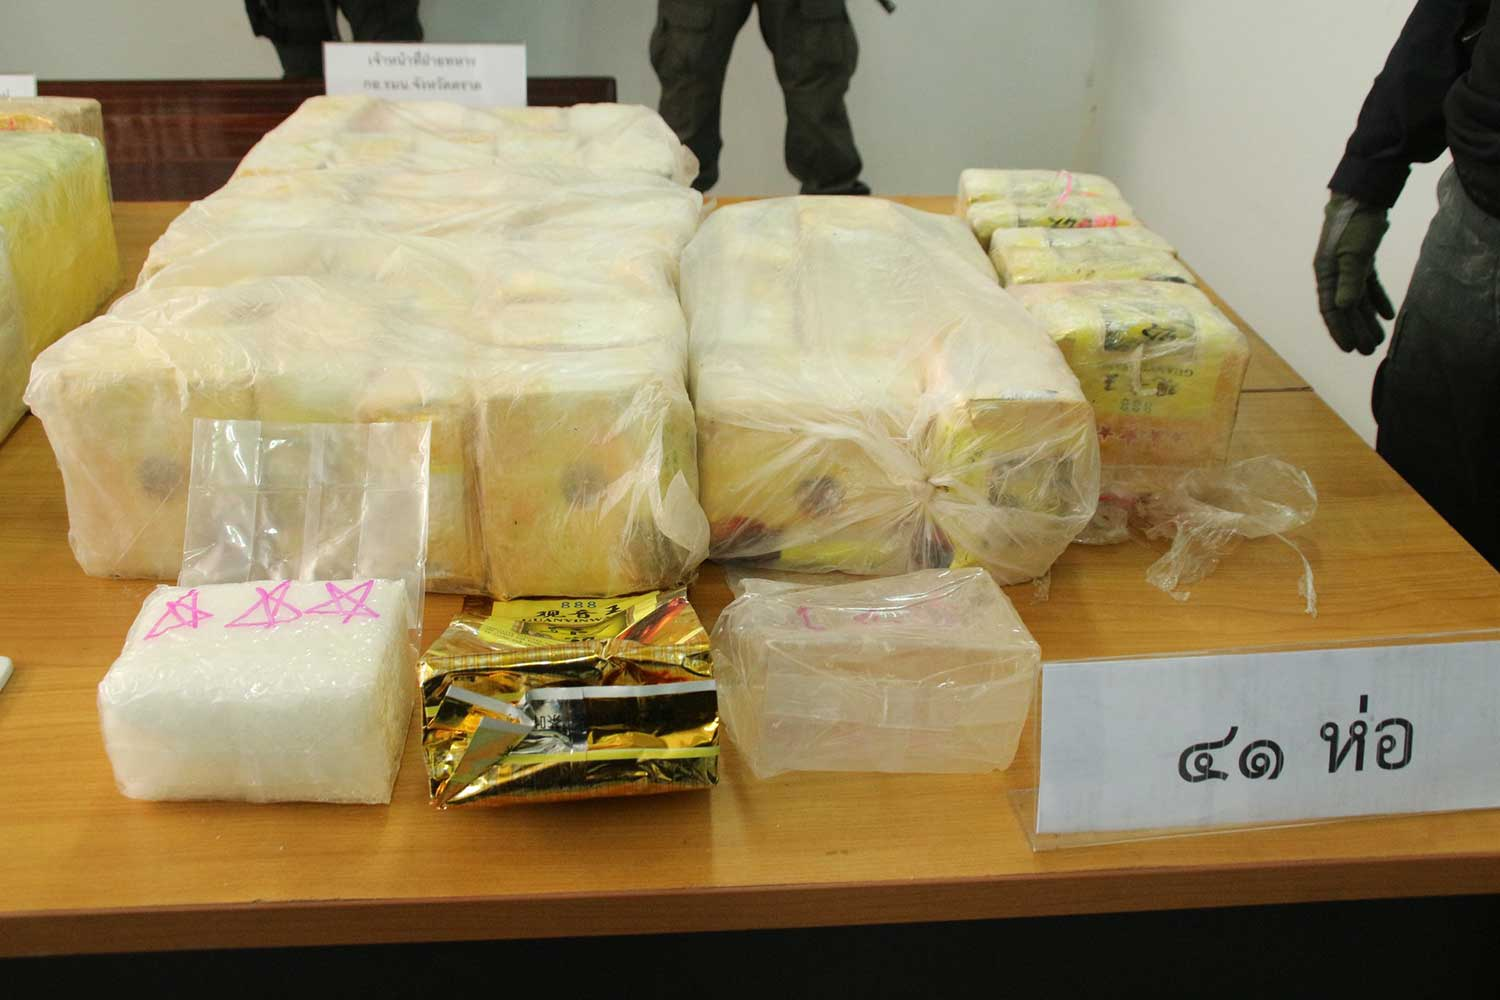 Crystal methamphetamine seized on Koh Krut was contained in green-tea packages with Chinese and English lettering. (Photo taken from Trat provincial police Facebook page)